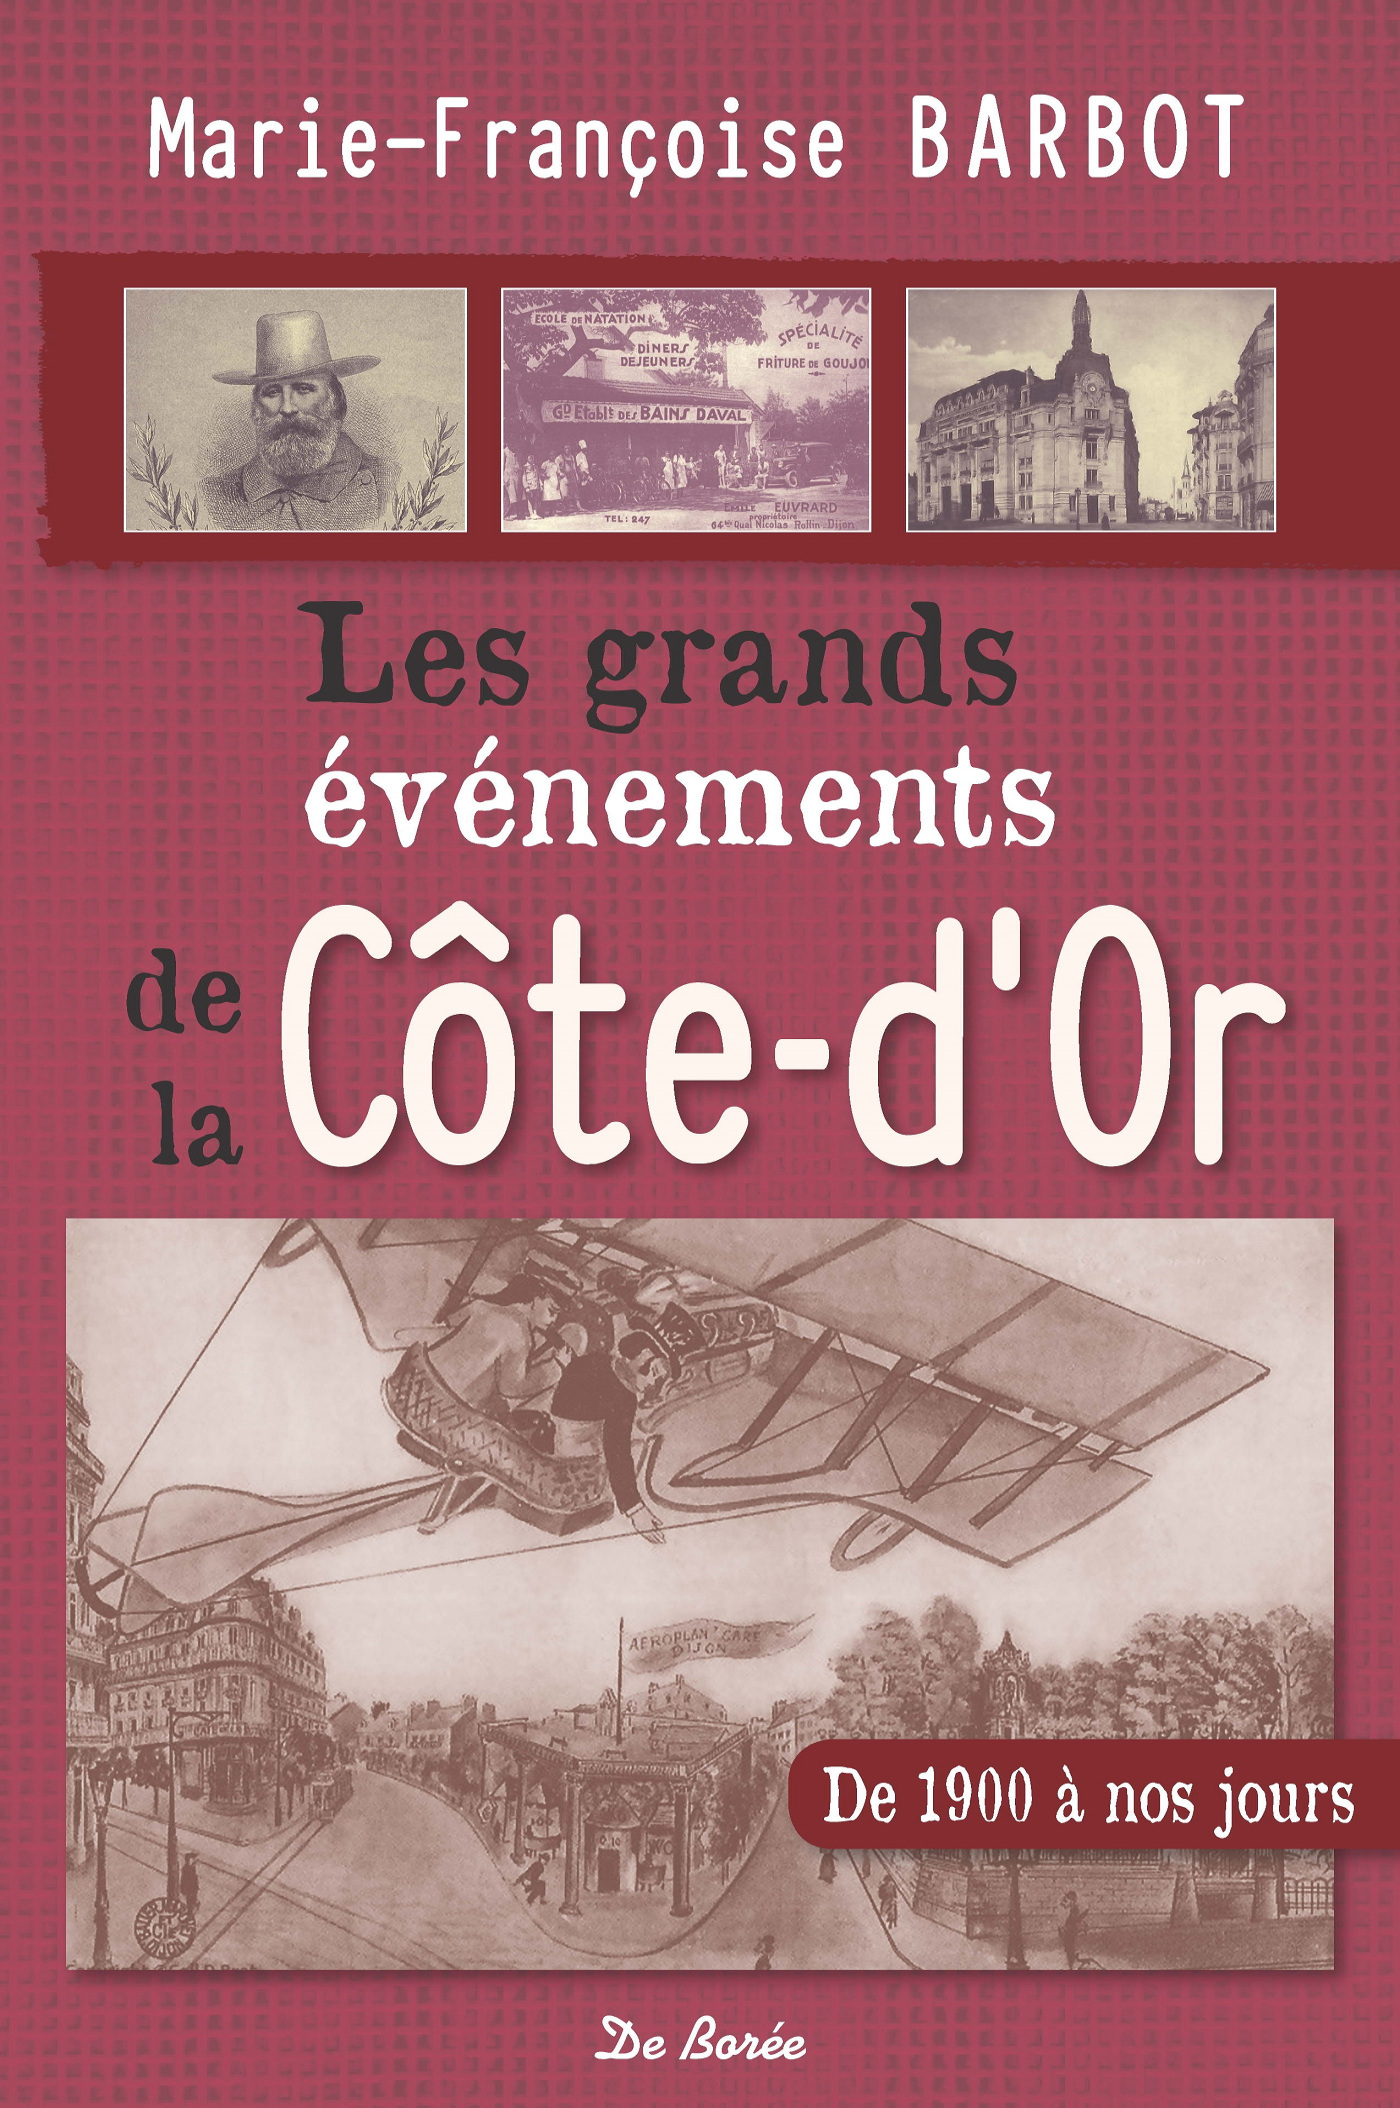 LES GRANDS EVENEMENTS DE LA COTE-D'OR DE 1900 A NOS JOURS